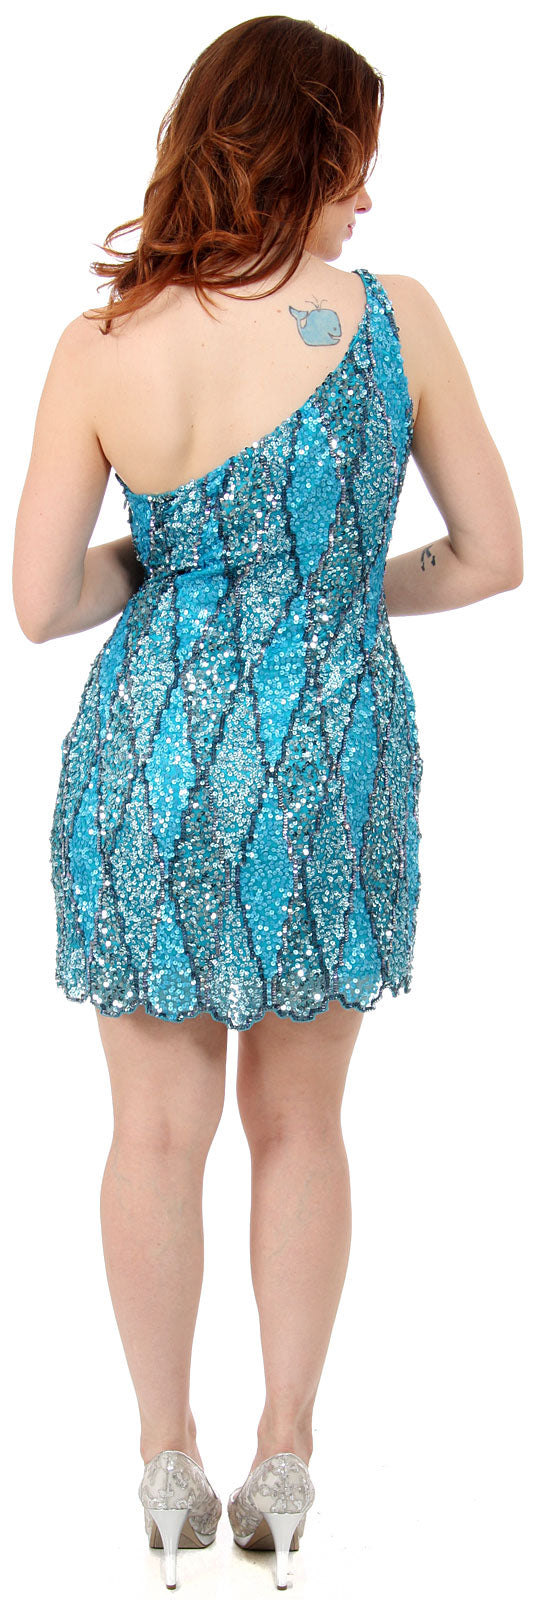 Image of One Shoulder Two Tone Dress With Asymetical Hemline back in Turquoise